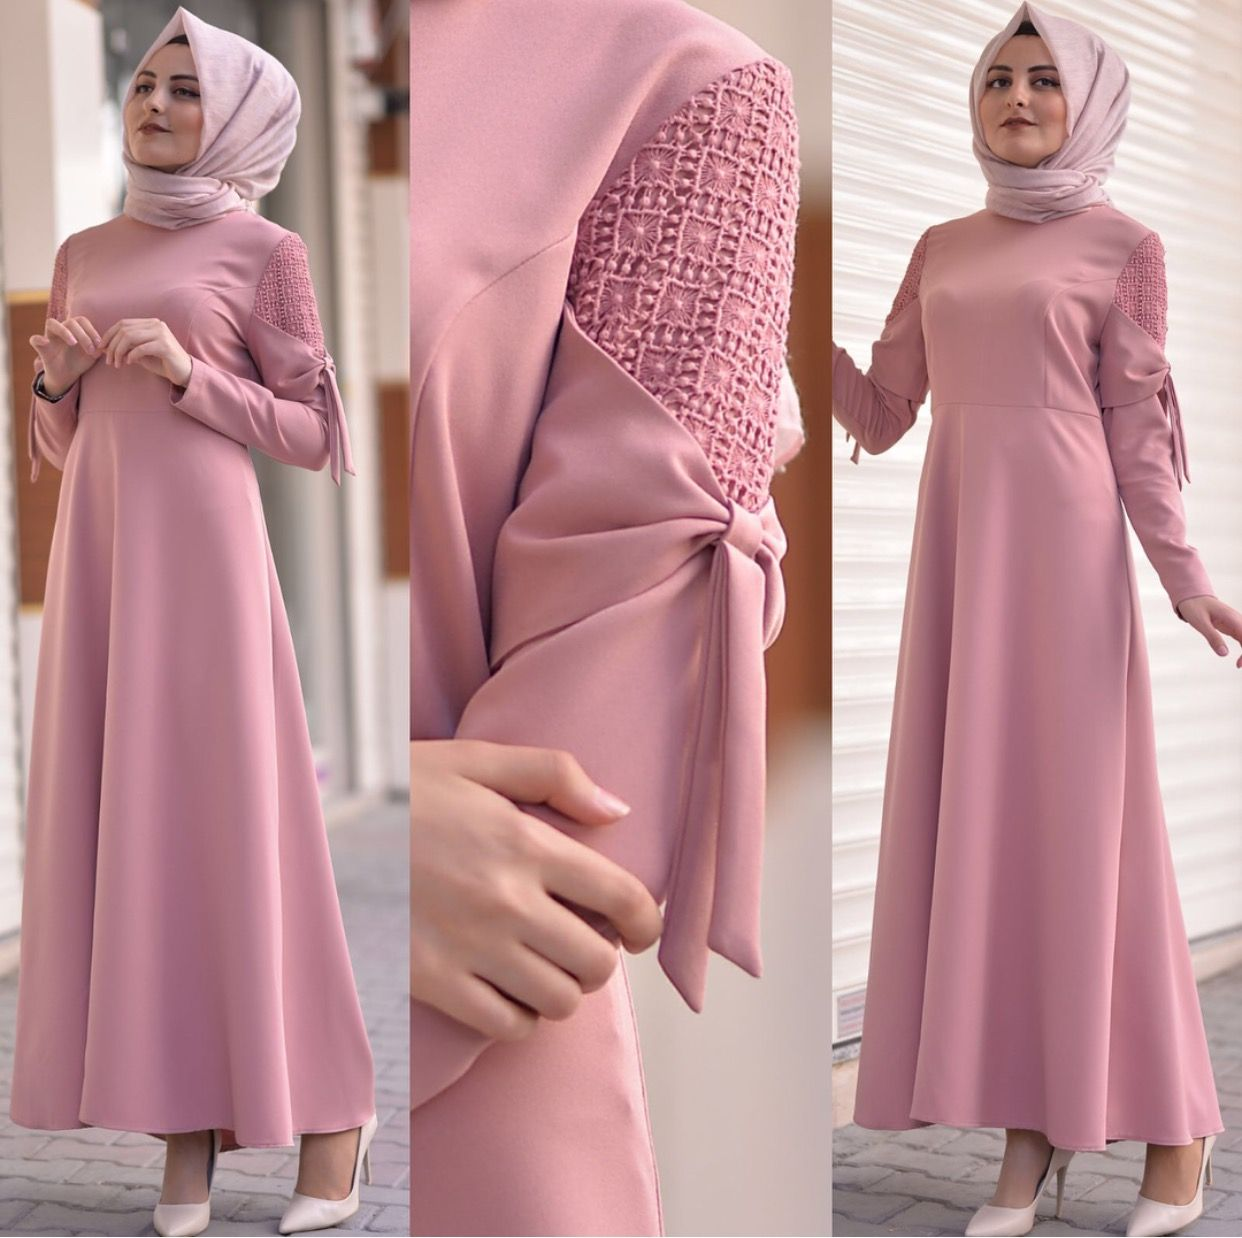 Ig sarahhesham cloth pinterest muslim abayas and muslim fashion